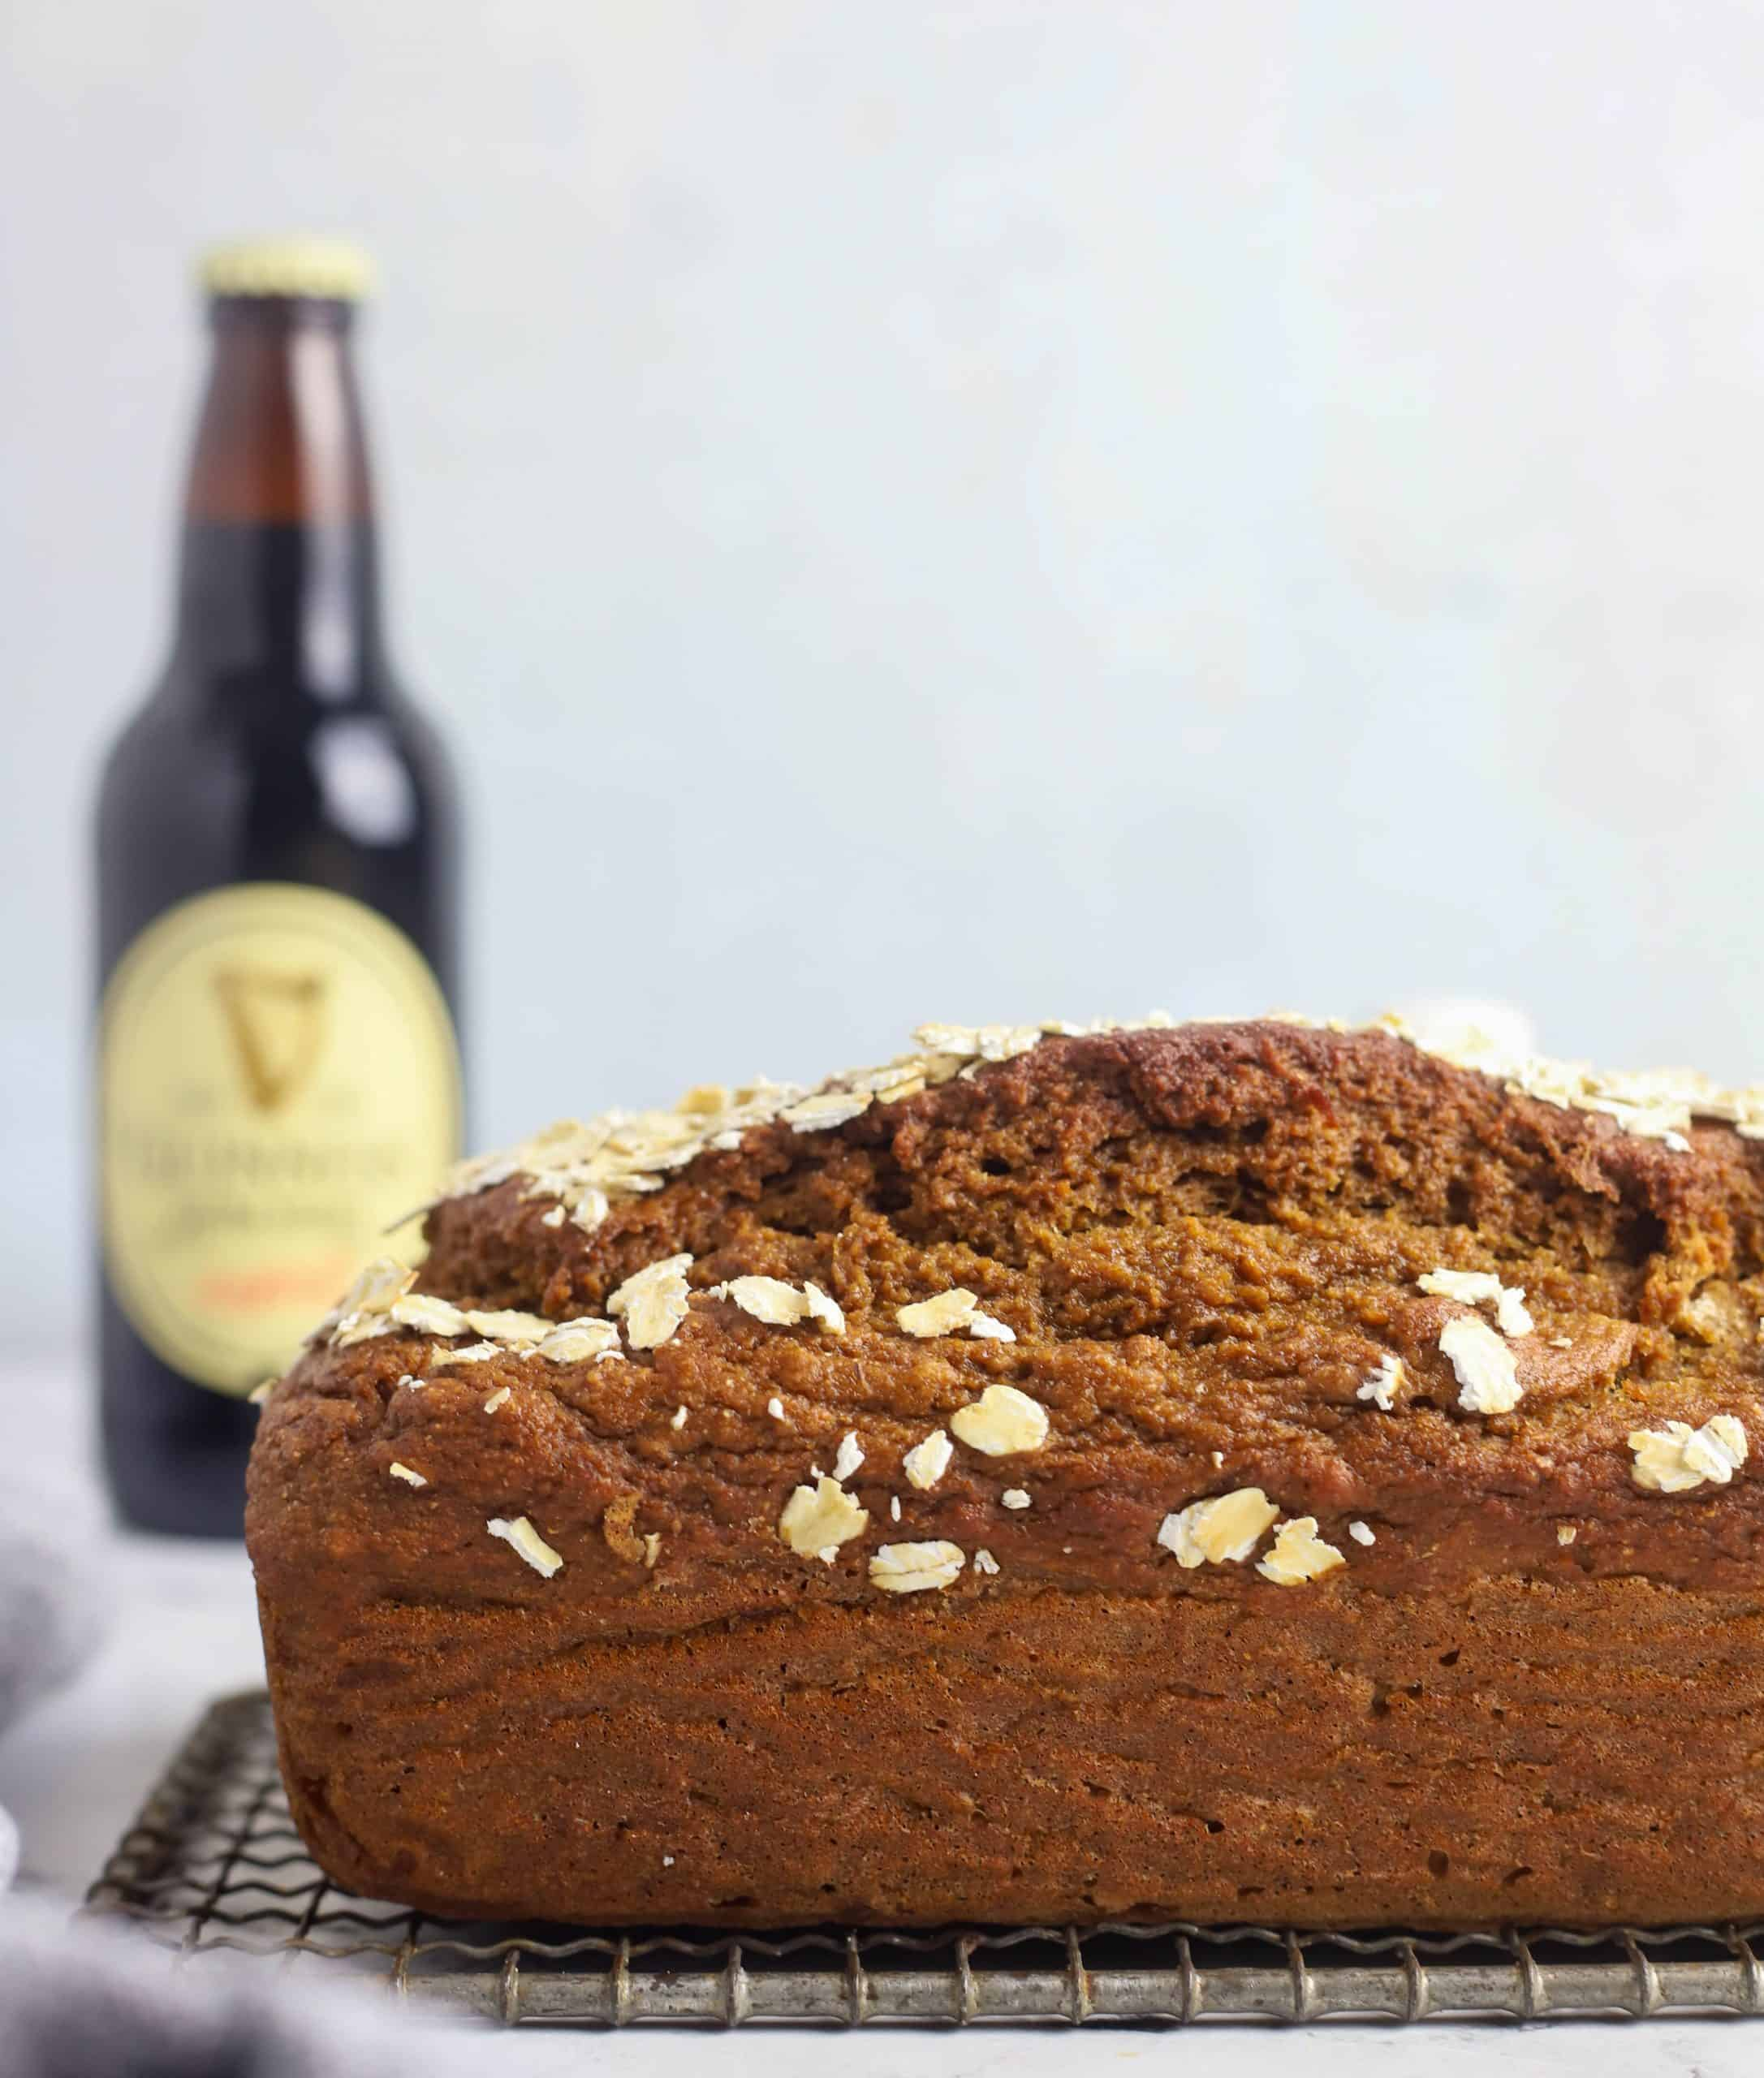 whole Guinness bread loaf and a bottle of Guinness beer